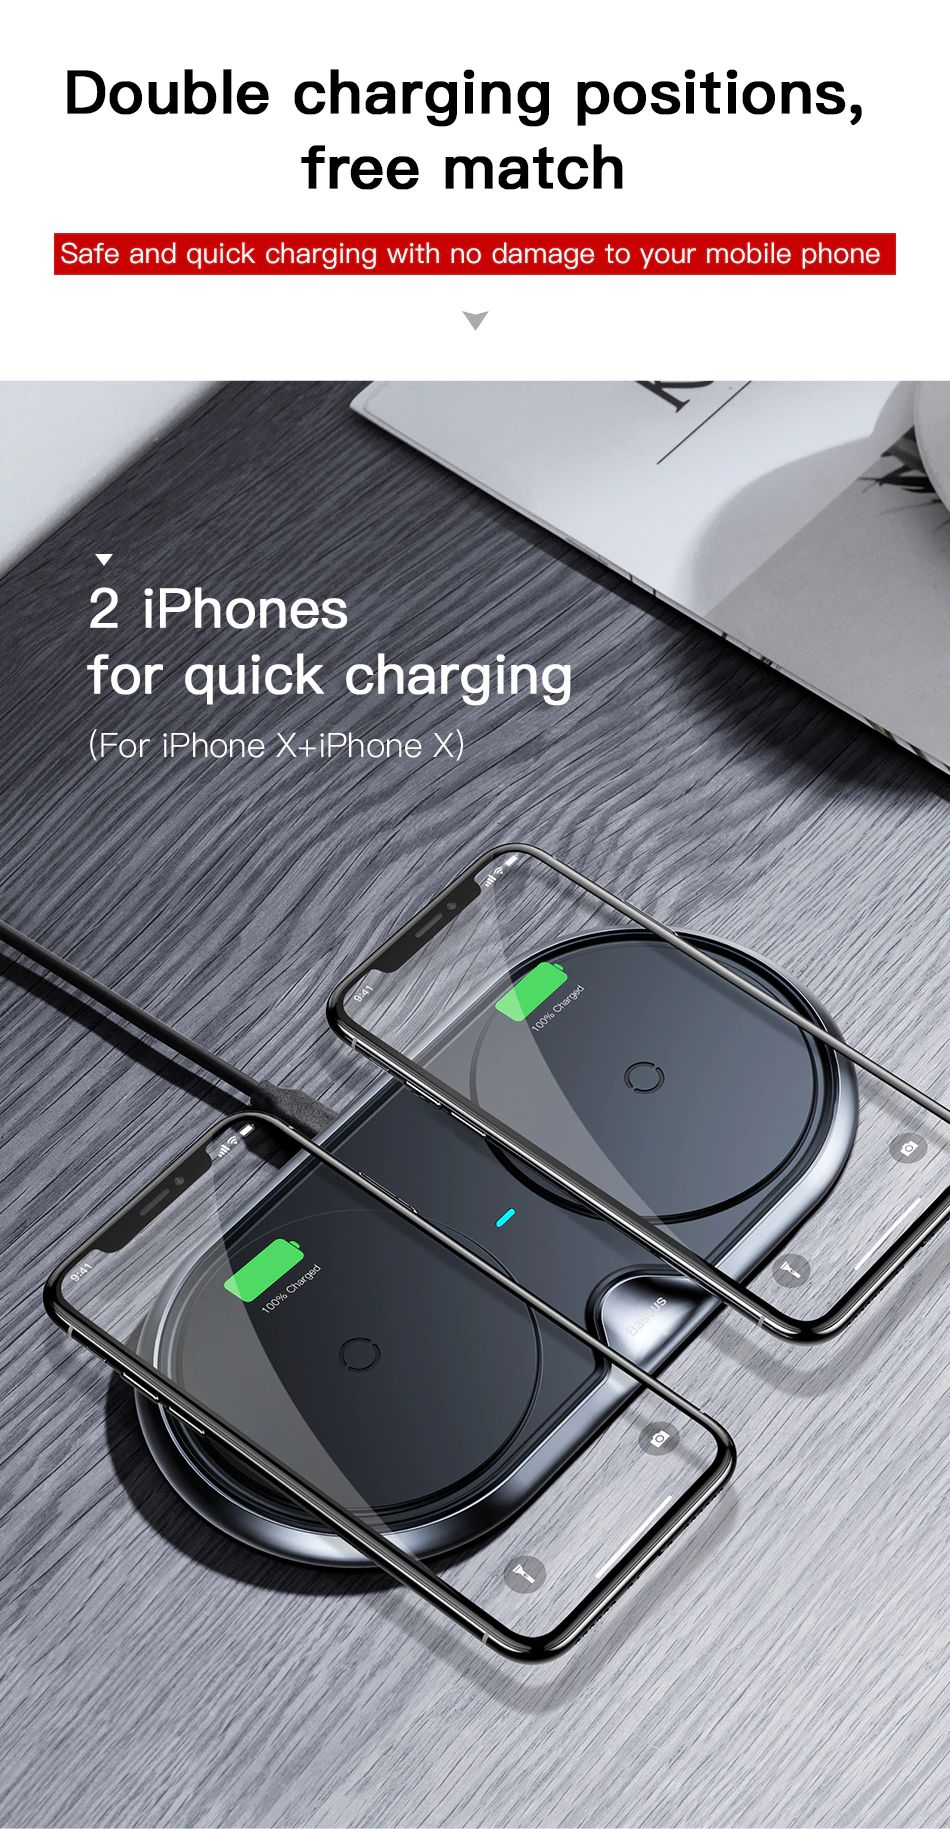 Baseus 10w Dual Seat Qi Wireless Charging Pad (3)